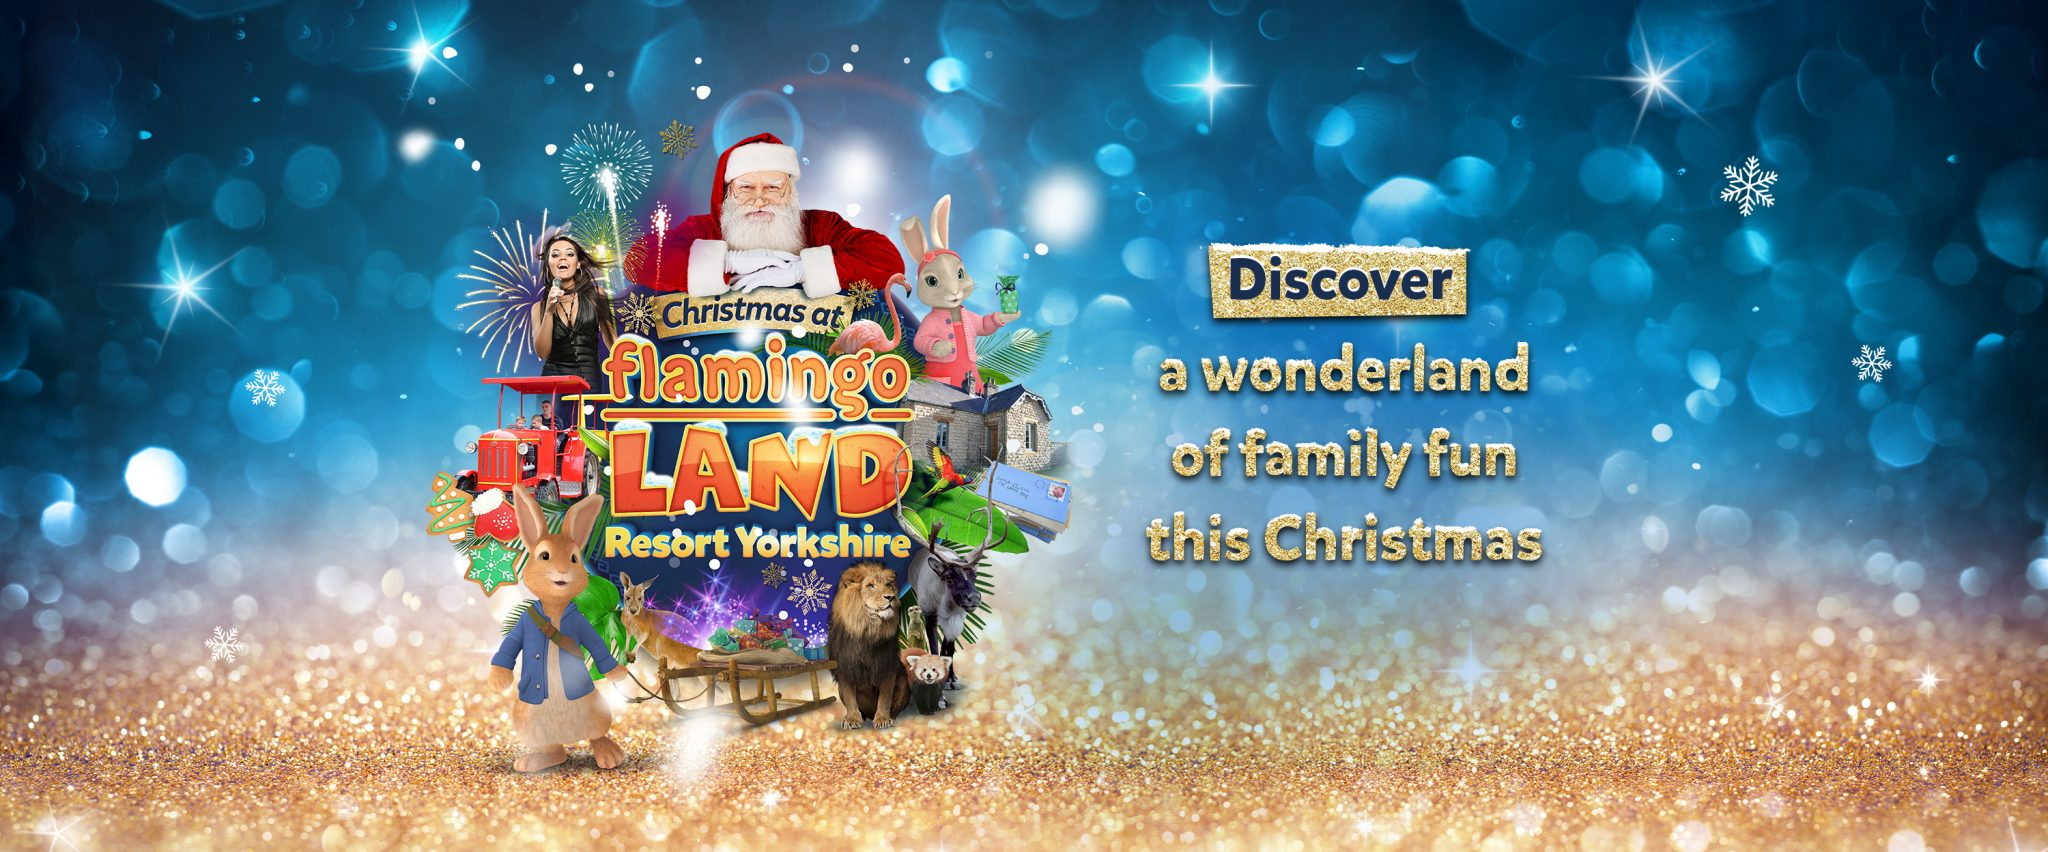 Christmas at Flamingo Land